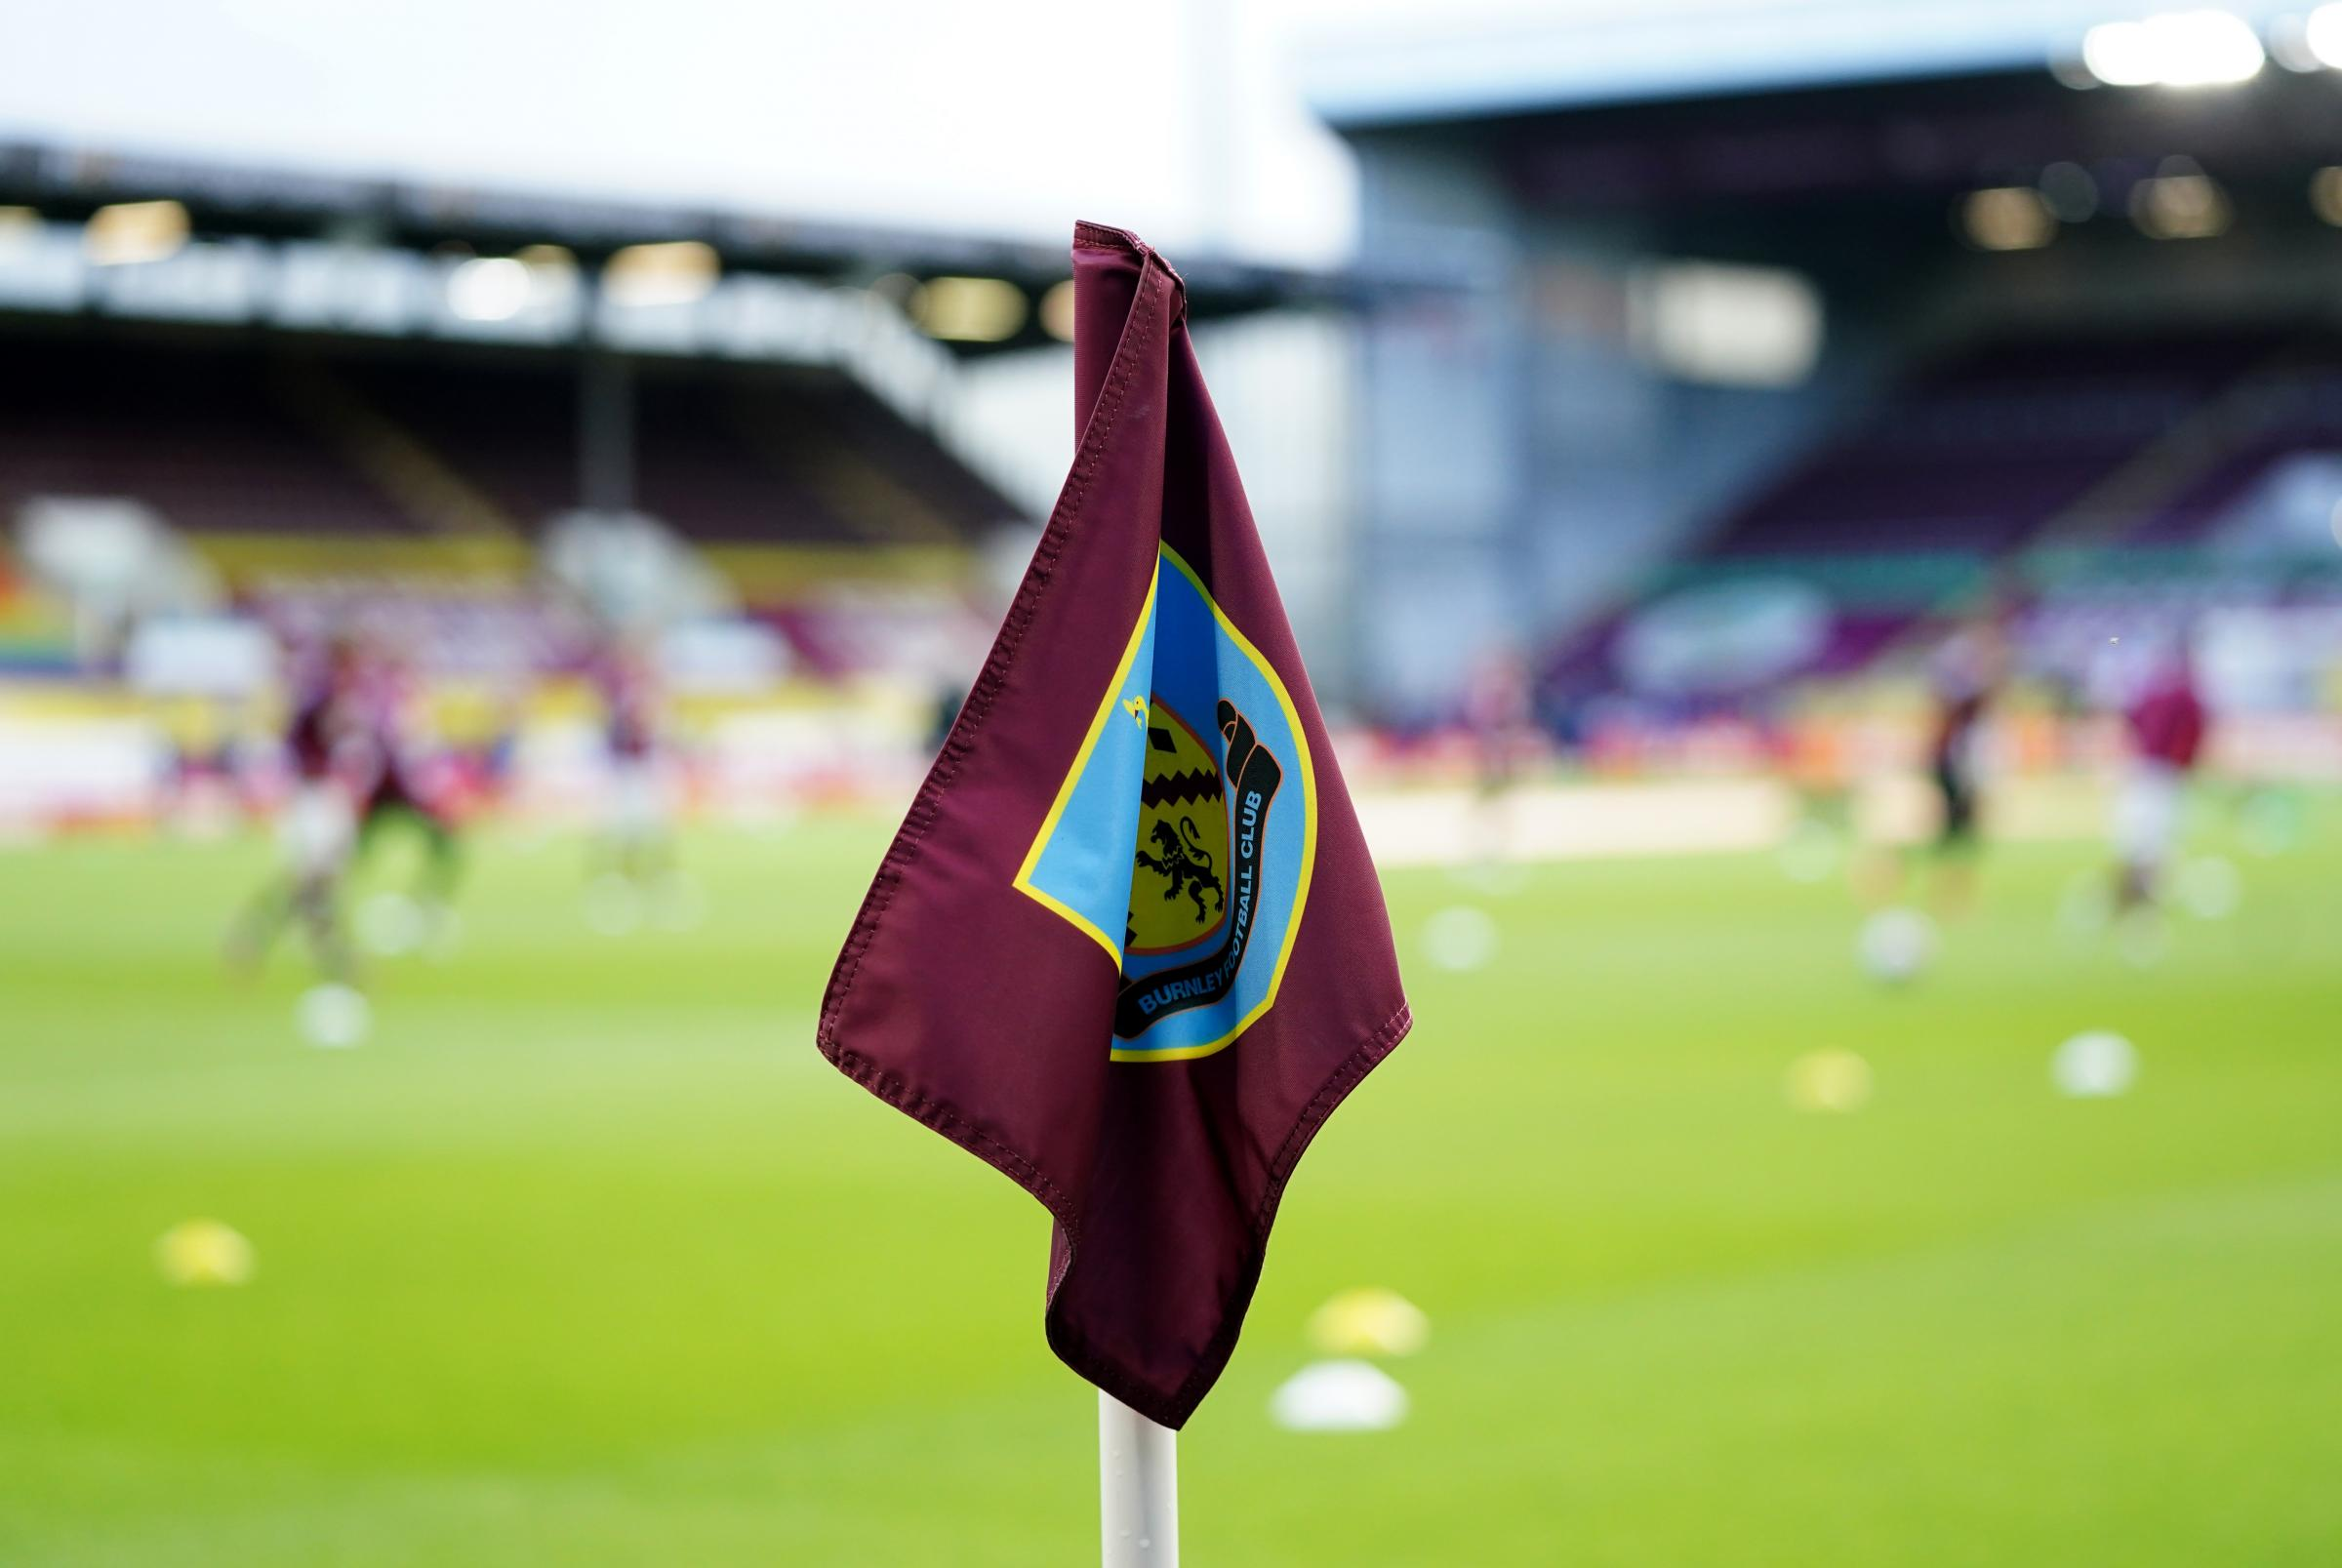 Burnley step up pre-season preparations with Morecambe and Salford wins